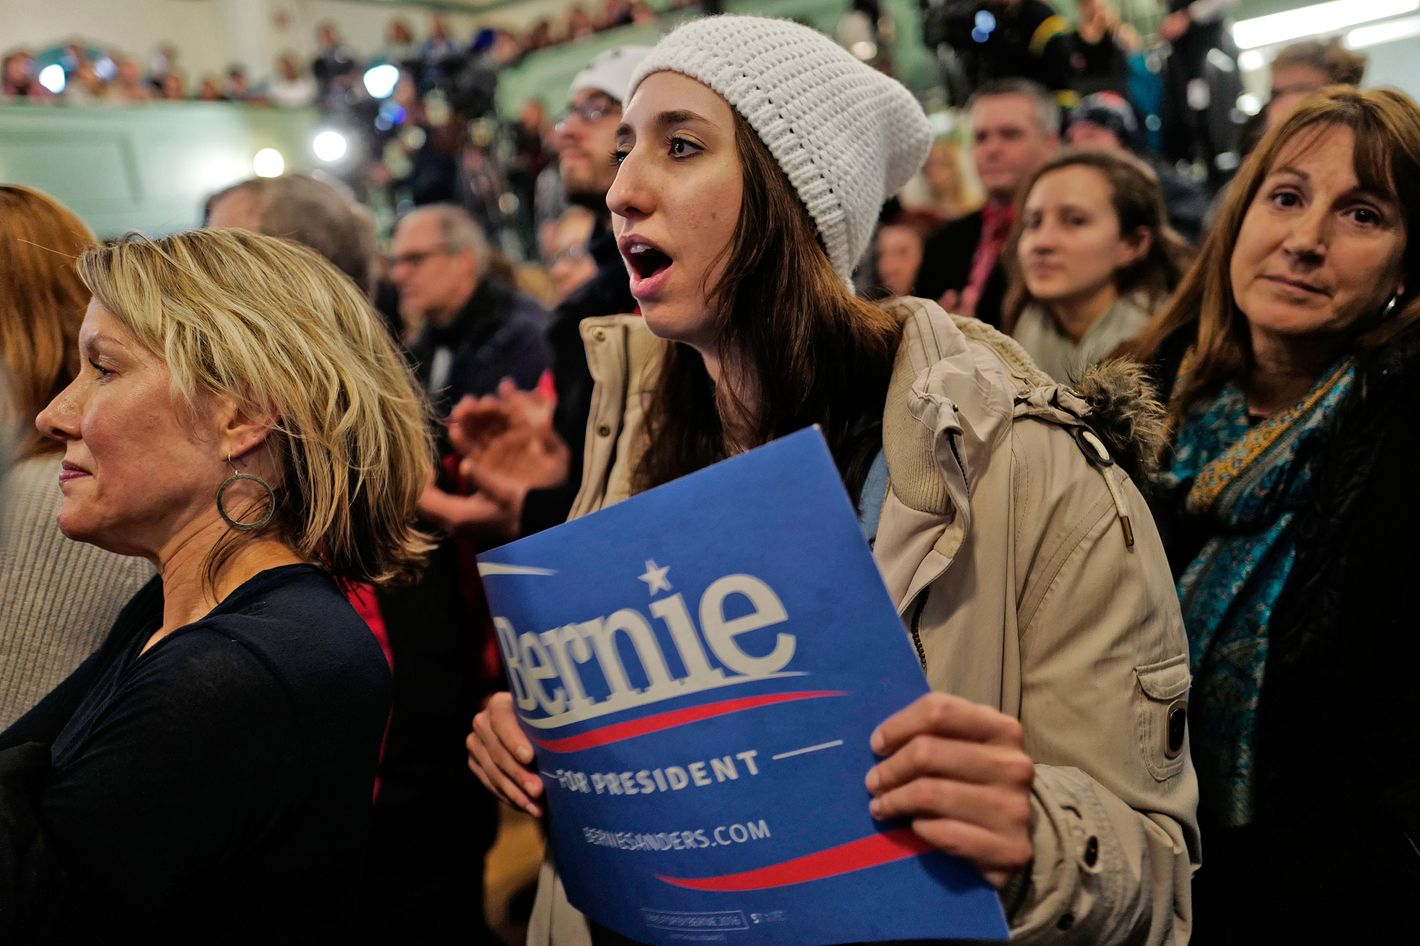 One poll shows young women prefer Sanders by 19 points.